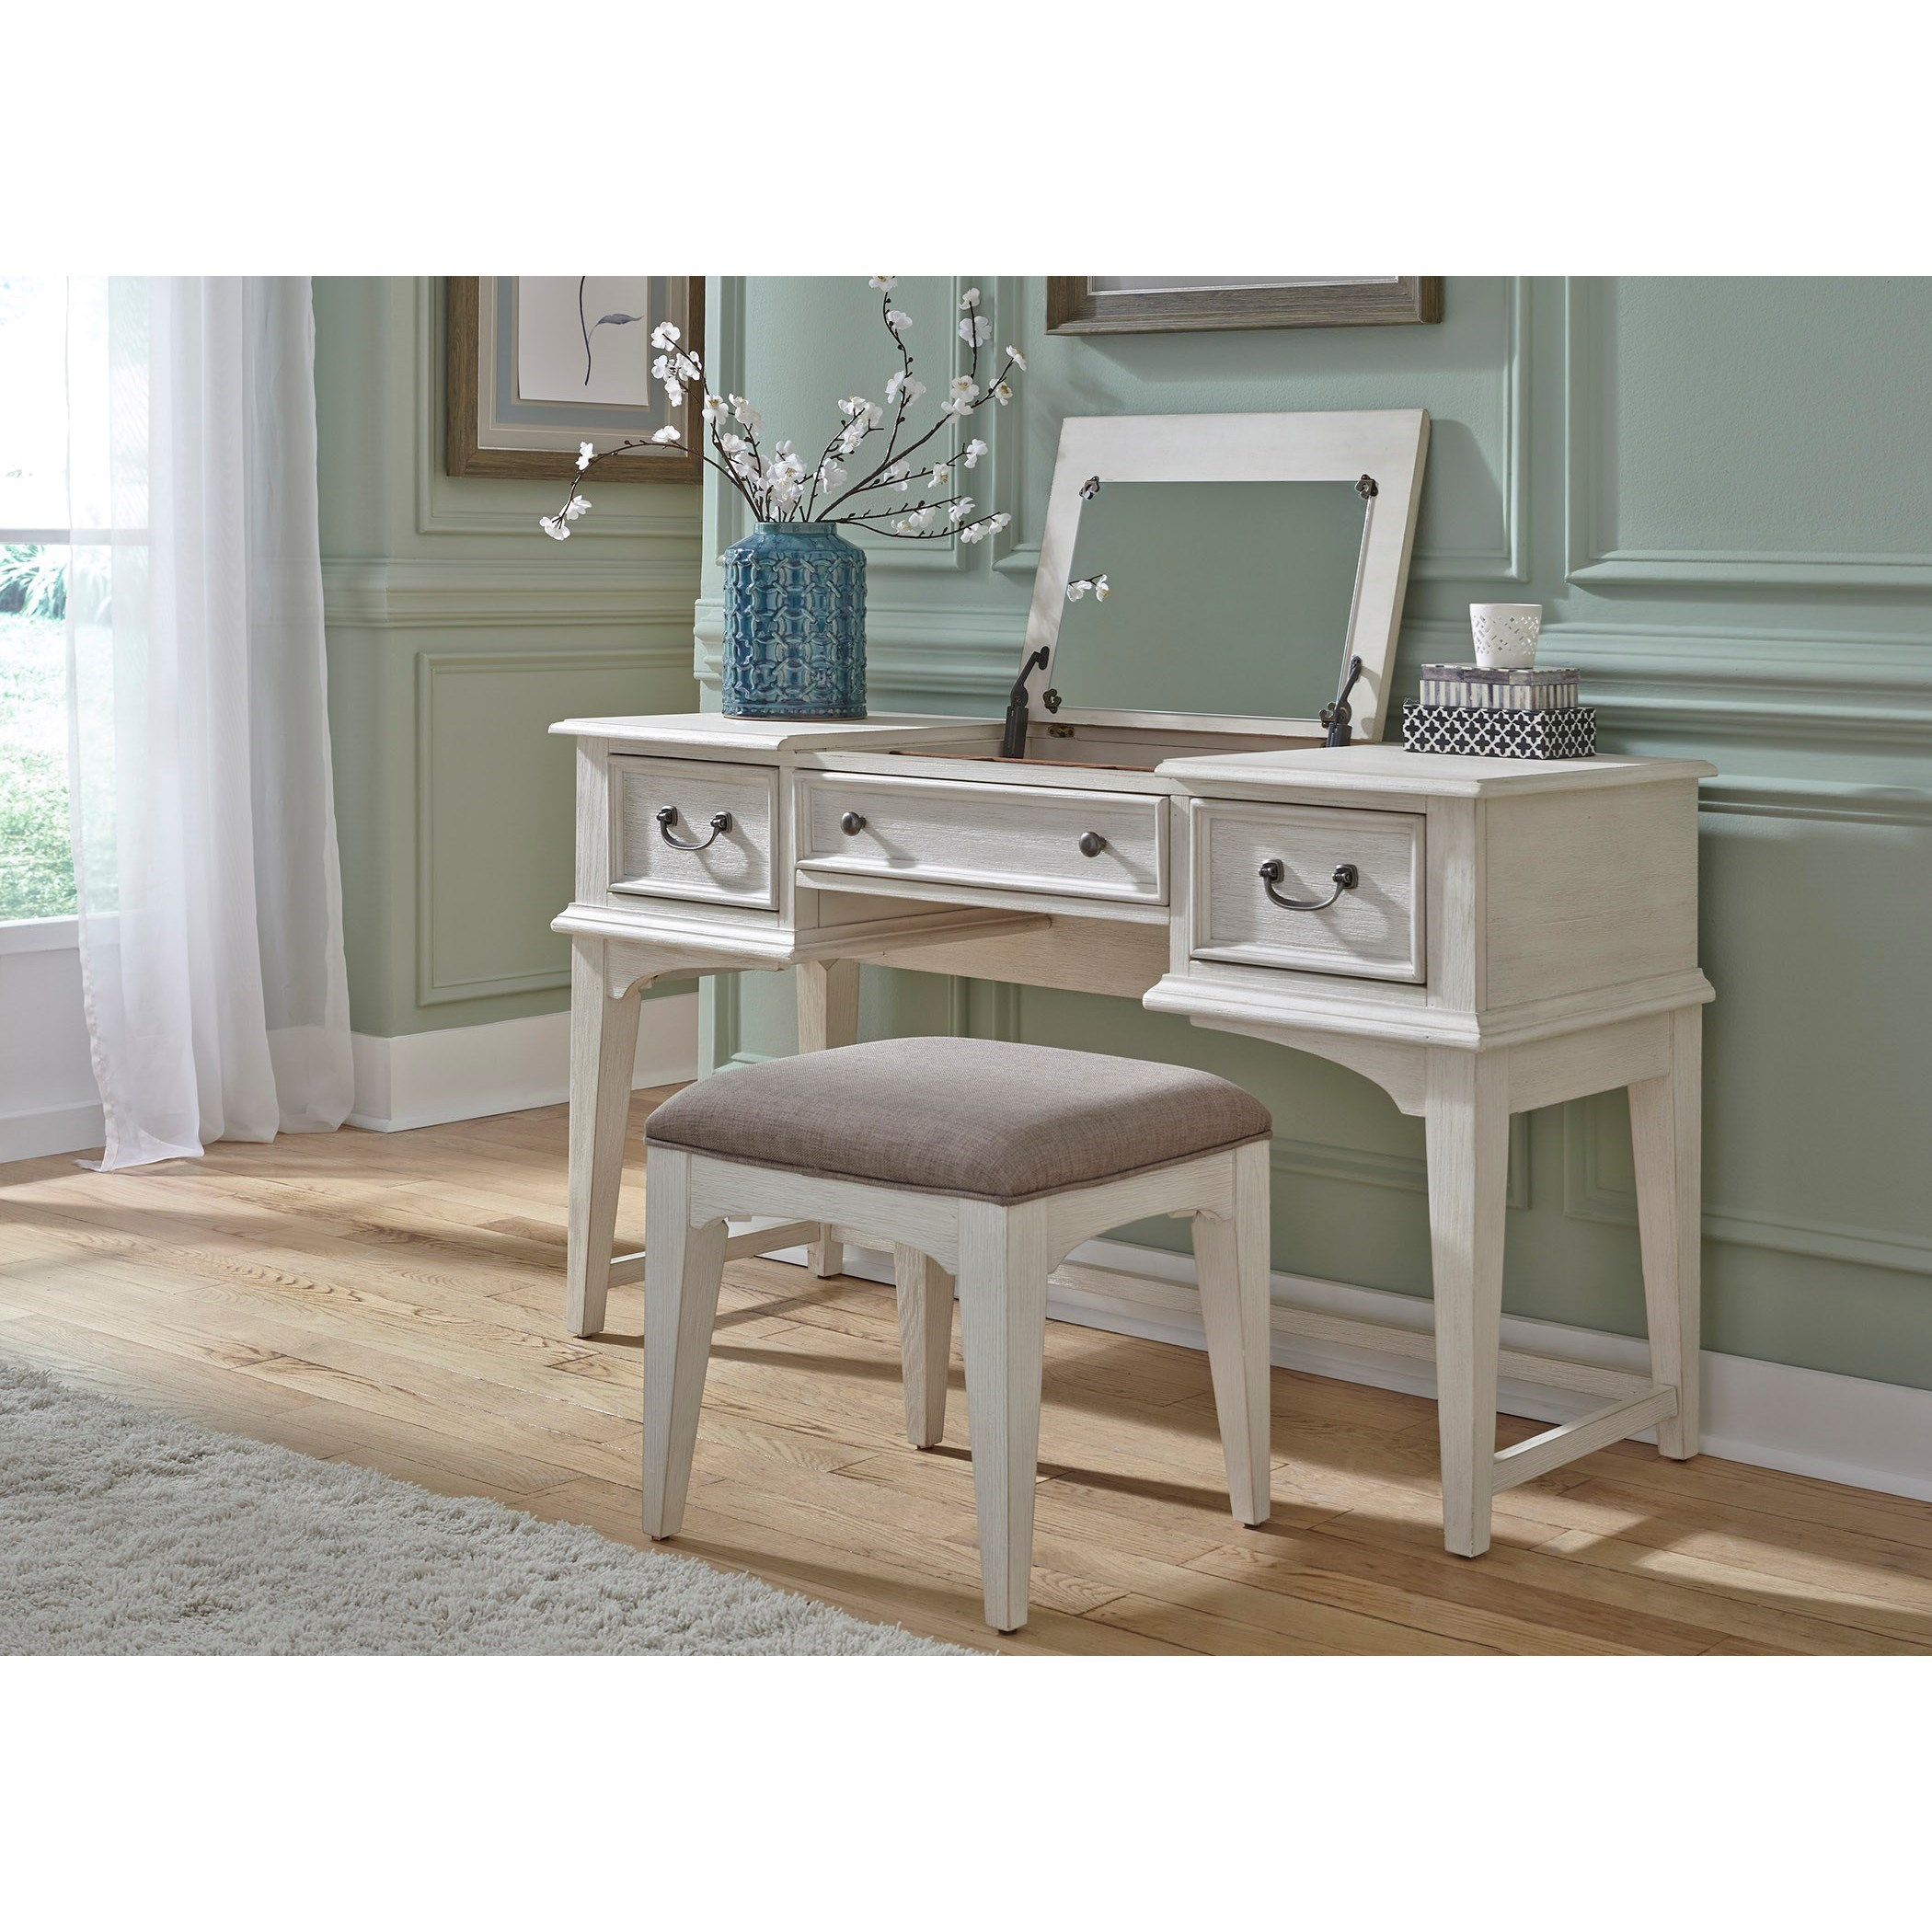 Liberty Furniture Bayside Bedroom Transitional Vanity With Lift Top Jewelry  Storage And Bench